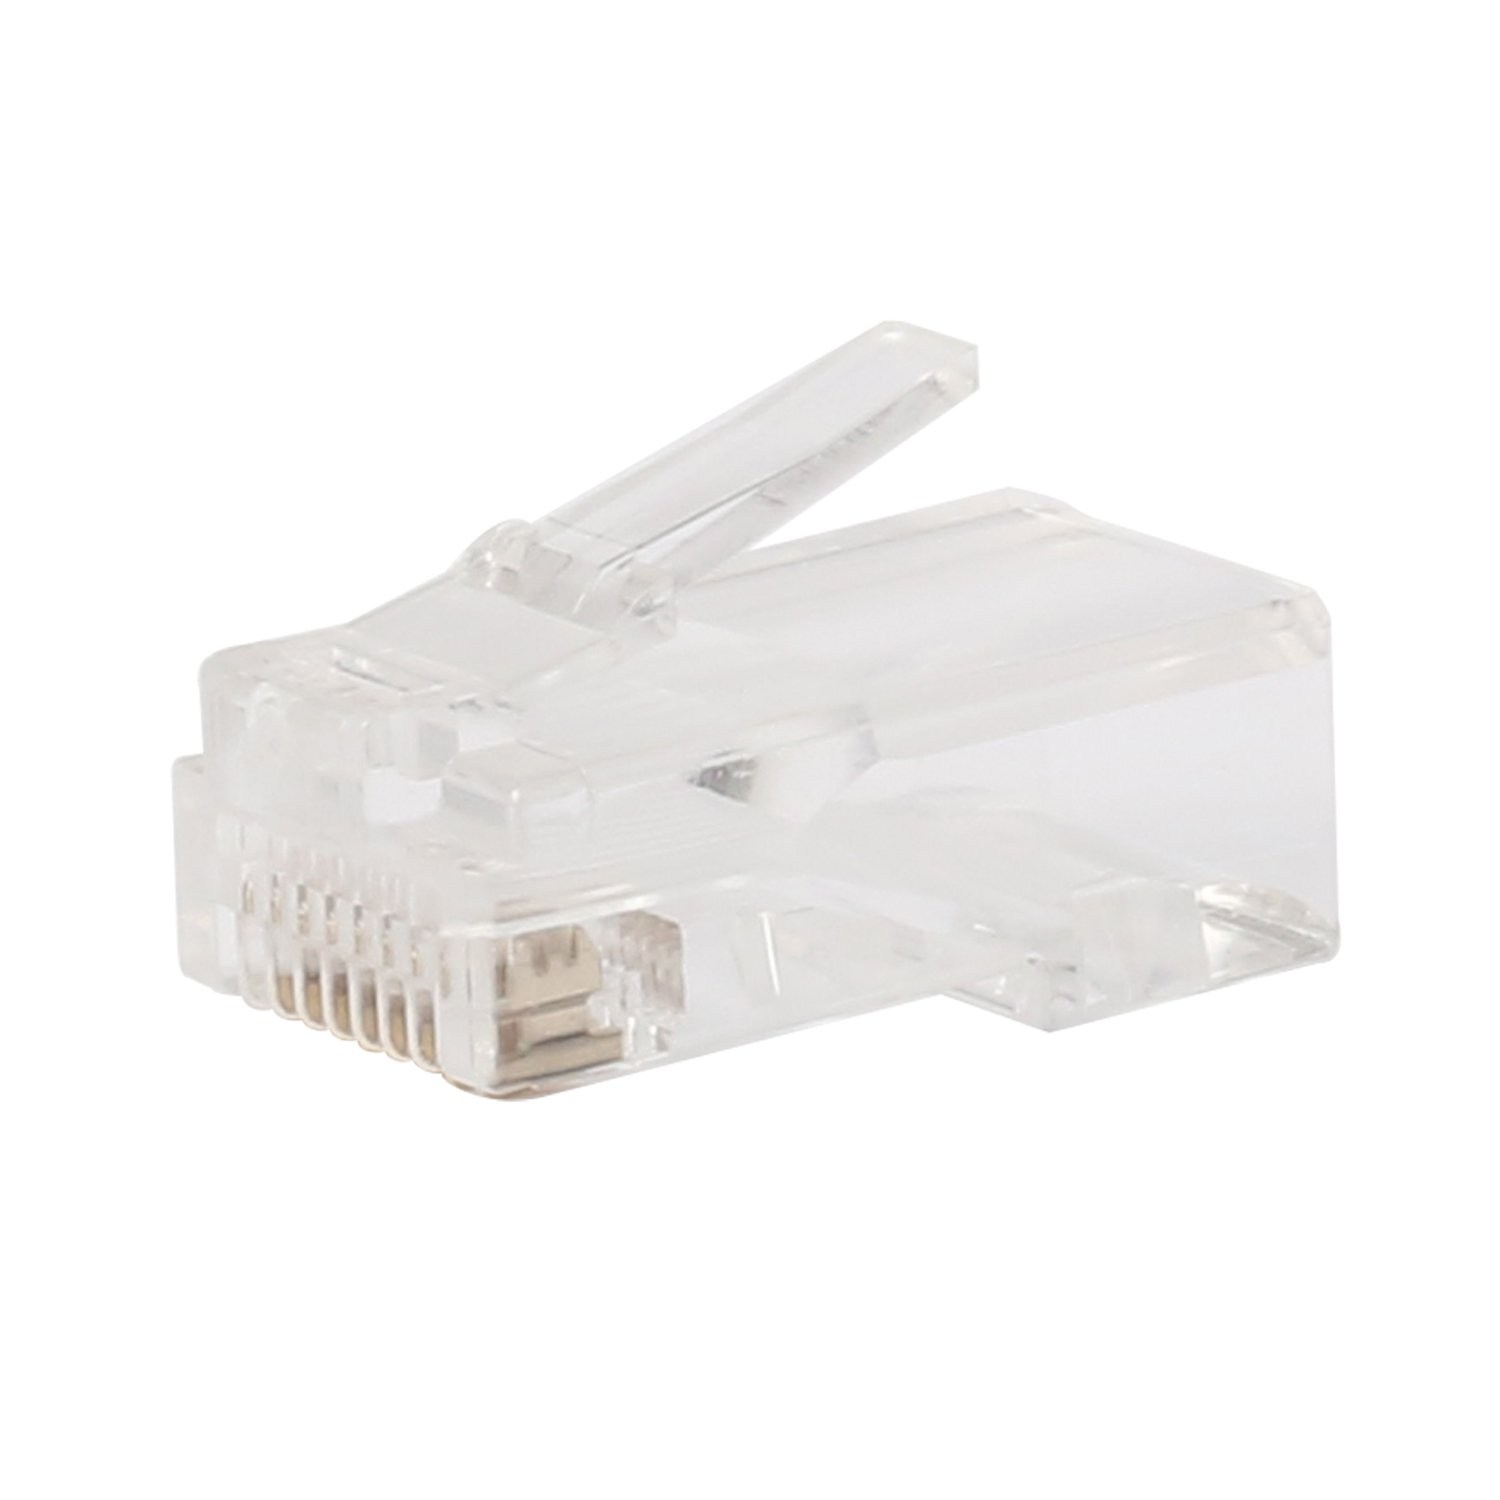 Wiring On Cable Systems Cat5 Cat5e Cat6 Cat6e Cat7 What Earth Postta Rj45 Connector 8p8c Utp Gold Plated Ethernet Crystal Head 100 Pieces Home Audio Theater